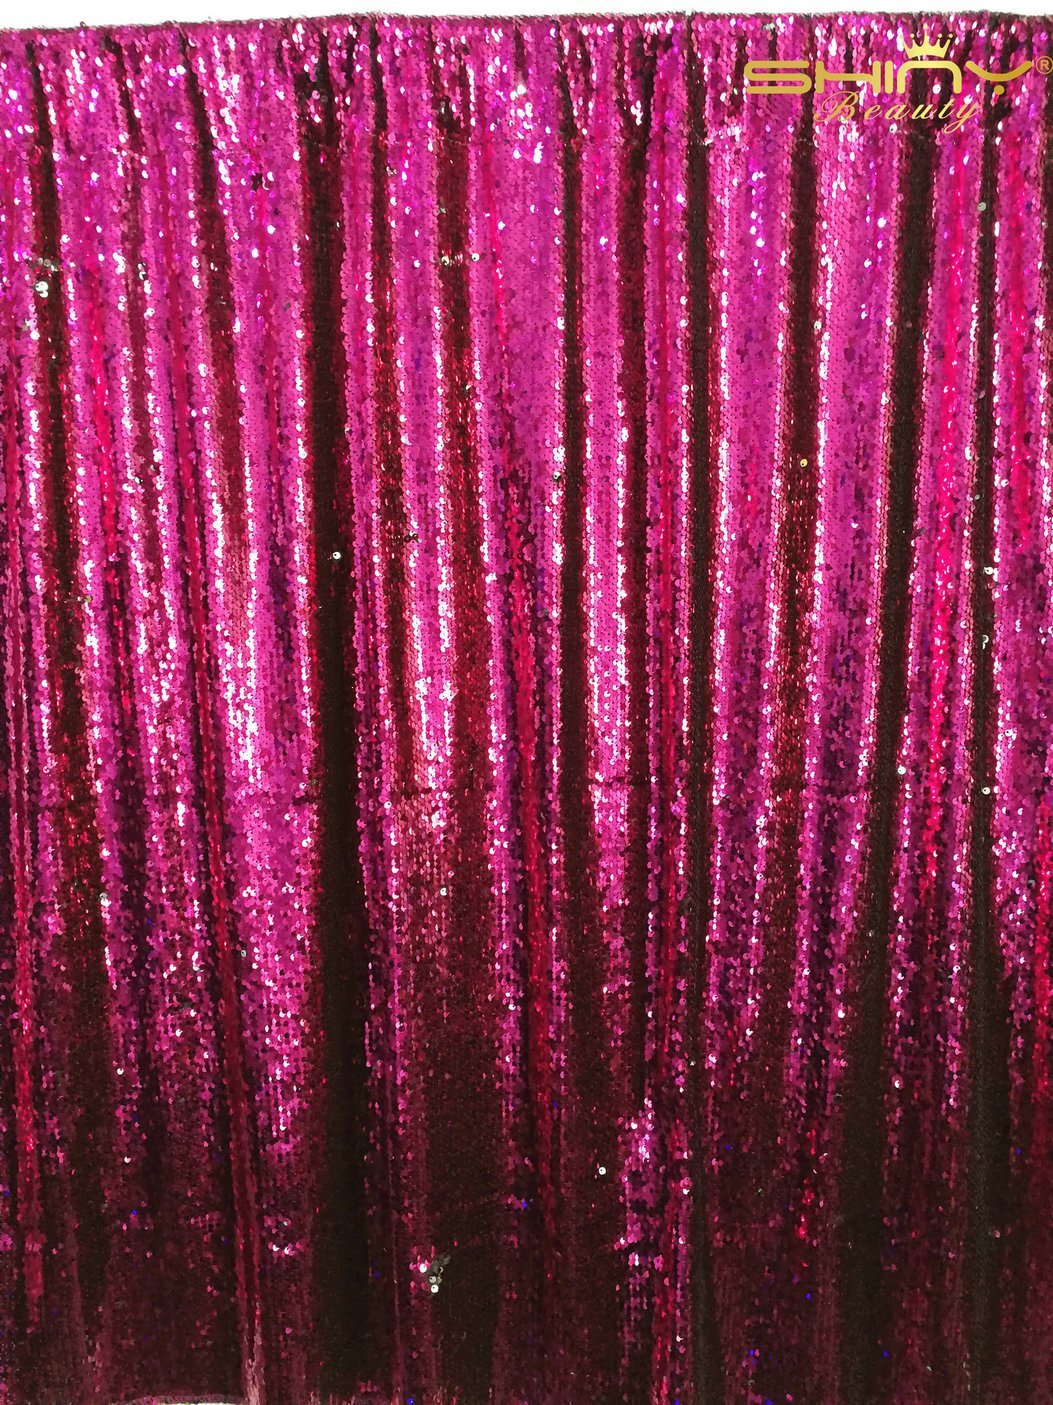 Pink Sequin Curtains Buy Sequin Backdrop Fuchsia Pink 3ftx5ft Shimmer Holiday Fabric